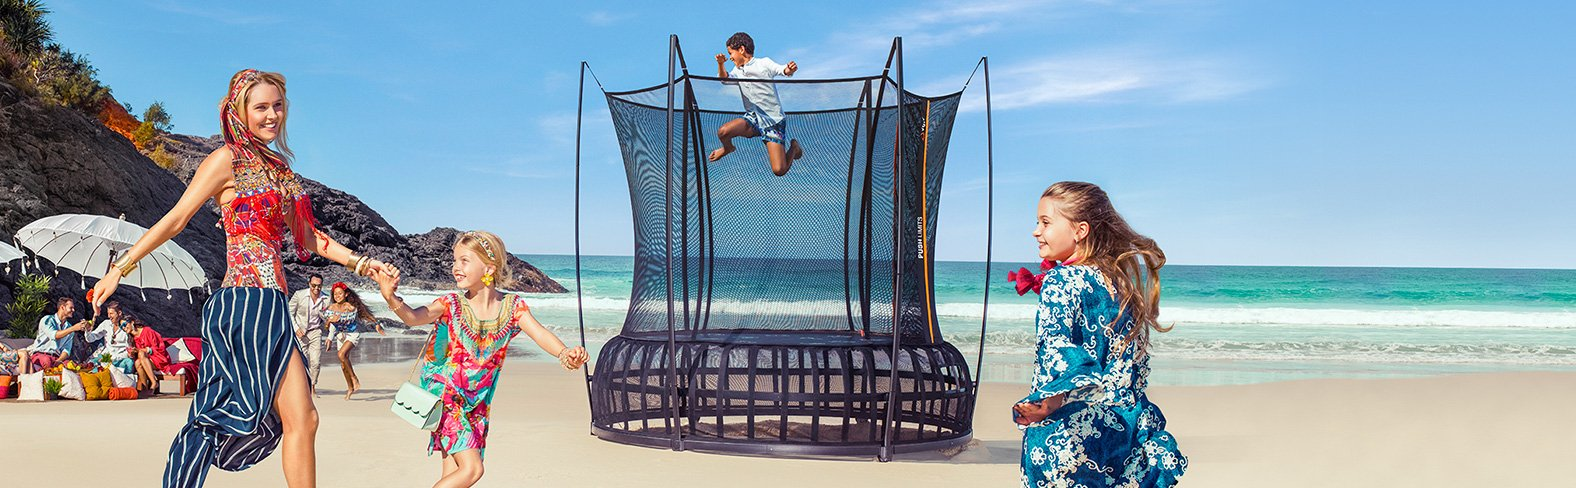 The Thunder Pro trampoline represents the ultimate bounce.